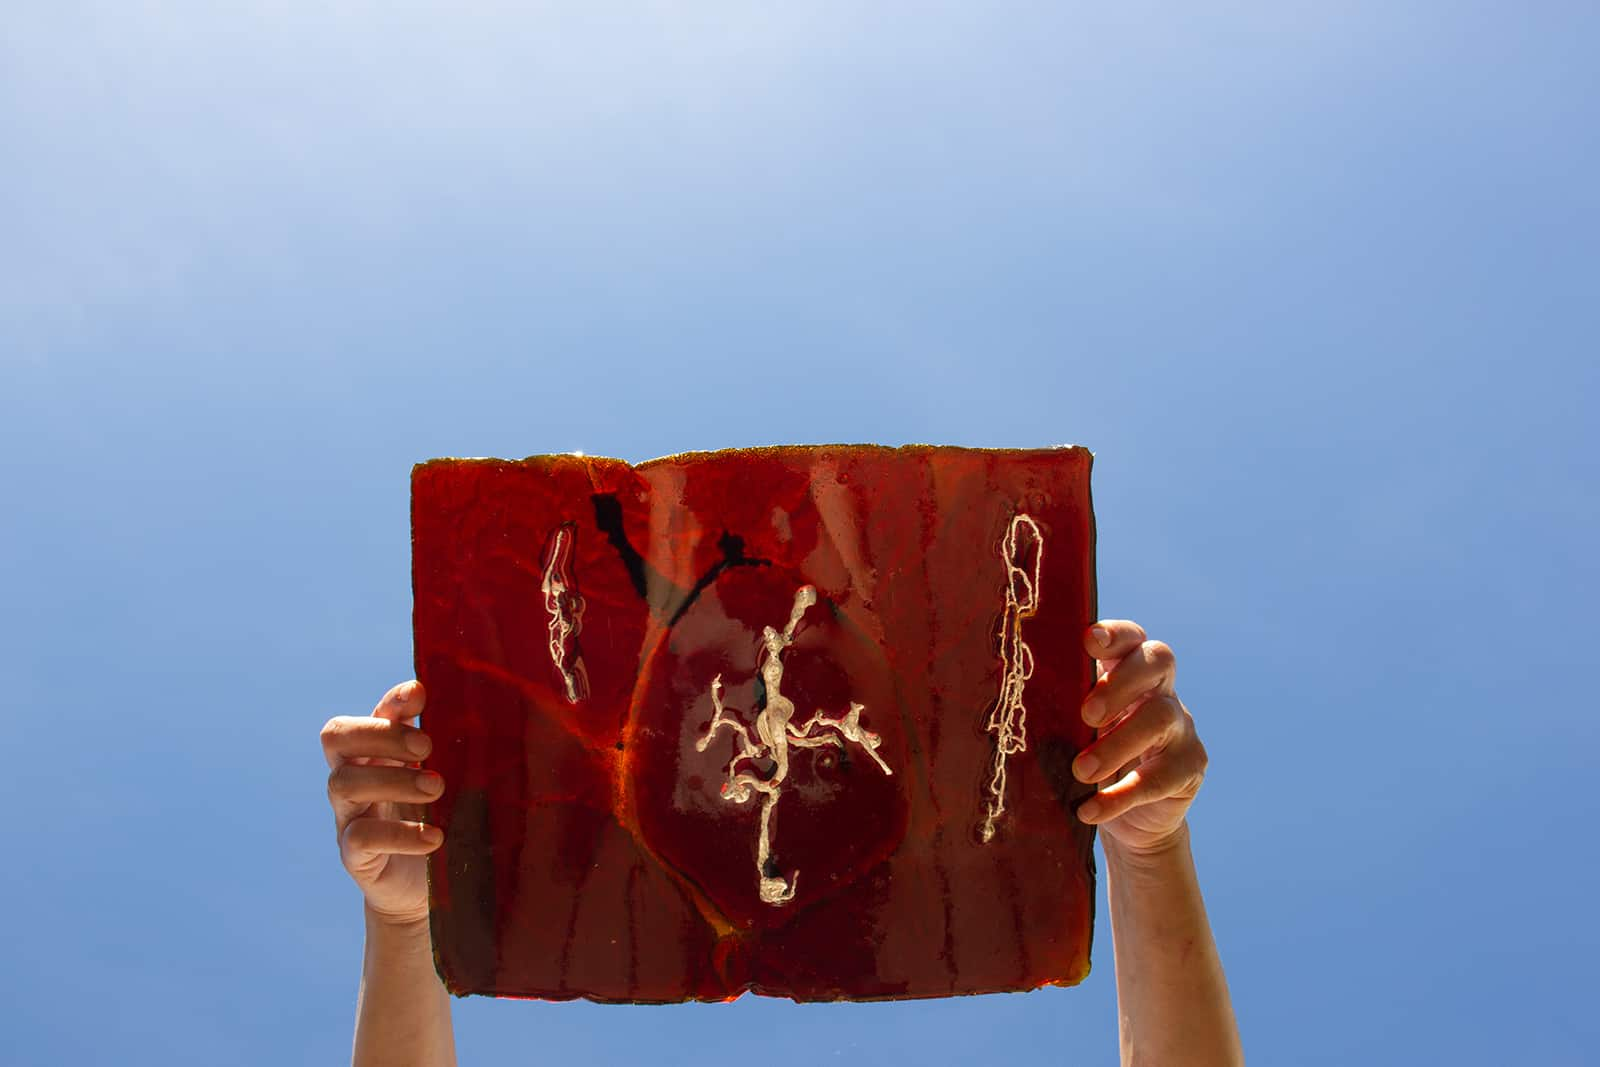 photograph of hands holding a piece of red-tinted resin with silver abstract shapes suspended in it.